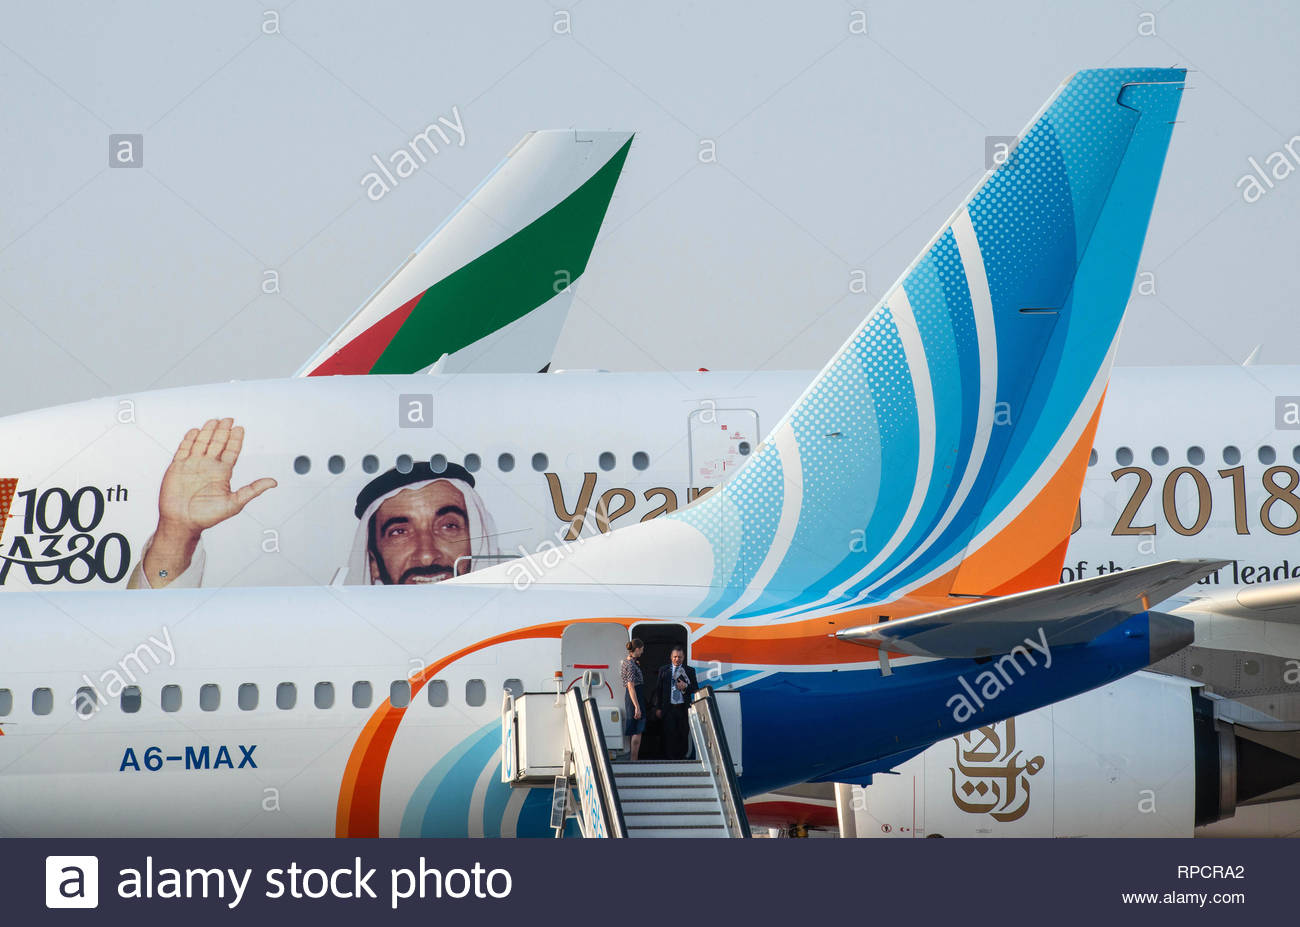 Three UAE airliners at Al Maktoum International Airport Dubai - Stock Image